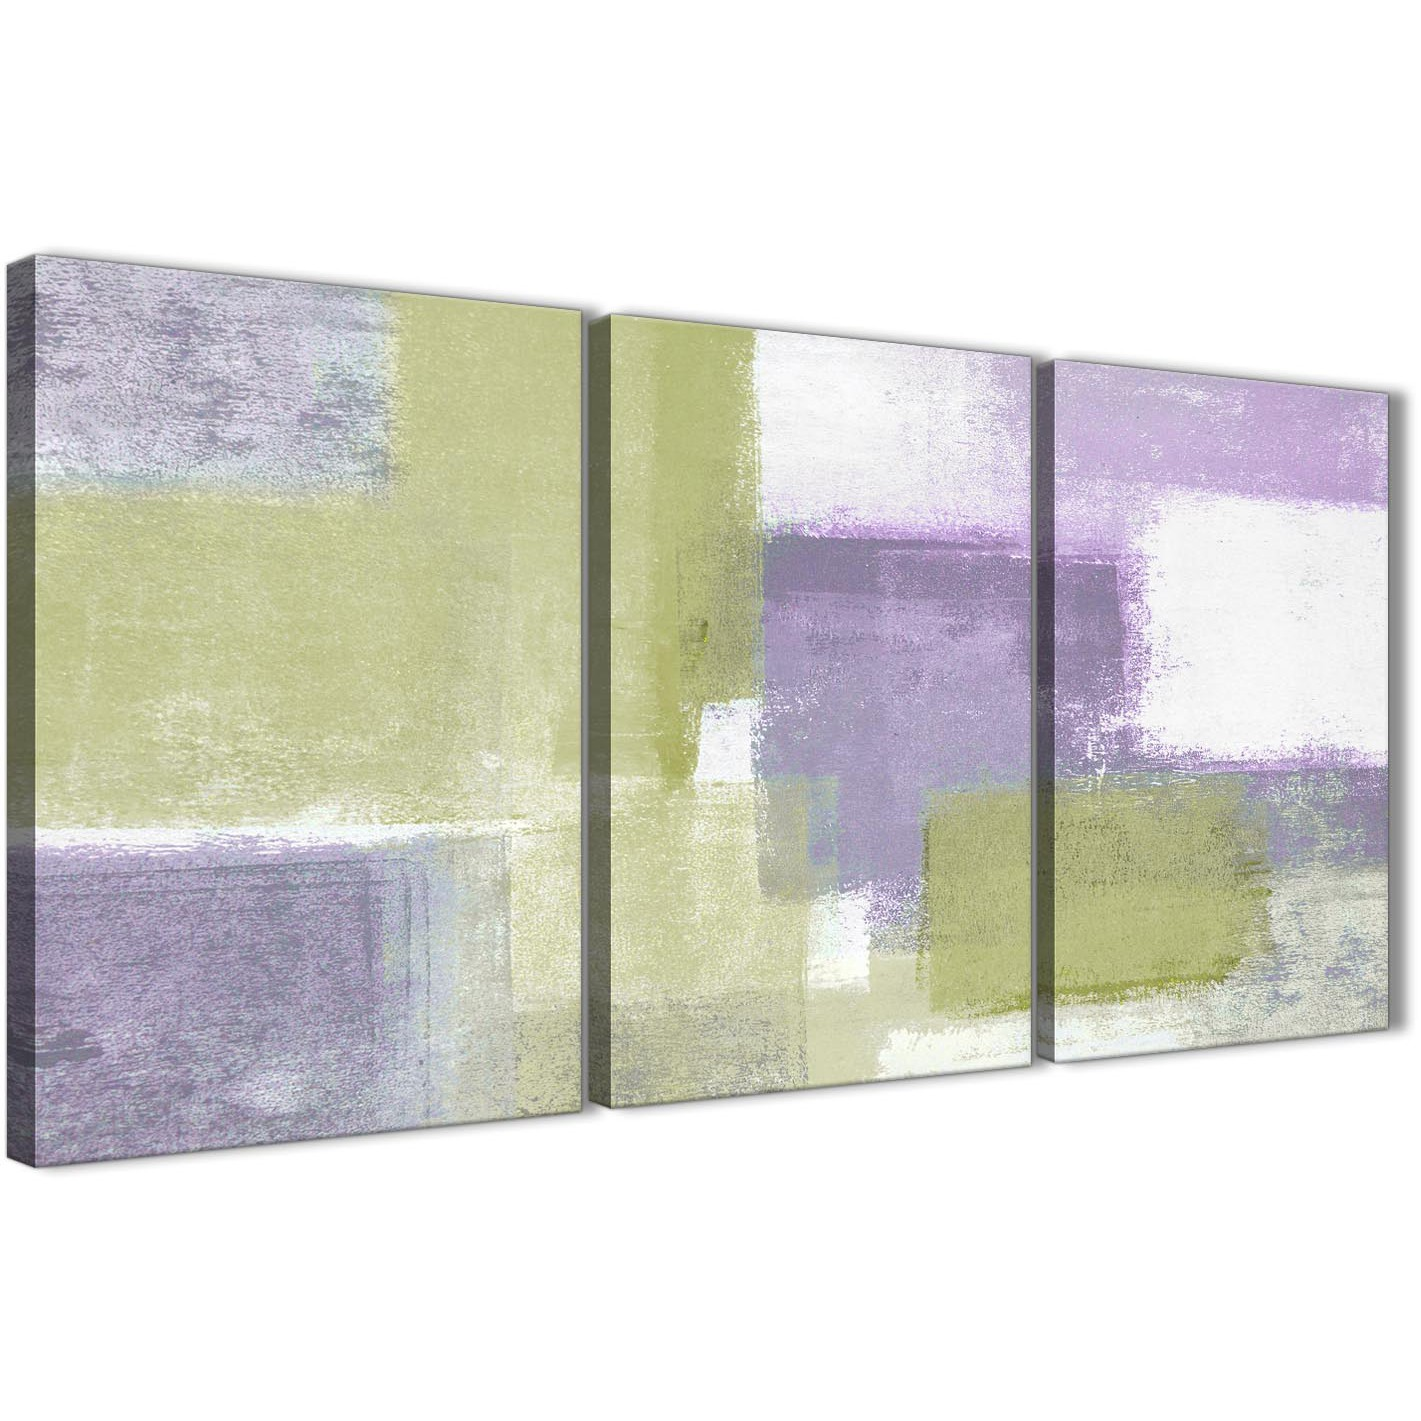 Items Similar To Teal Purple Abstract Flowers Wall Decor: Lime Green Purple Abstract Painting Canvas Wall Art Print